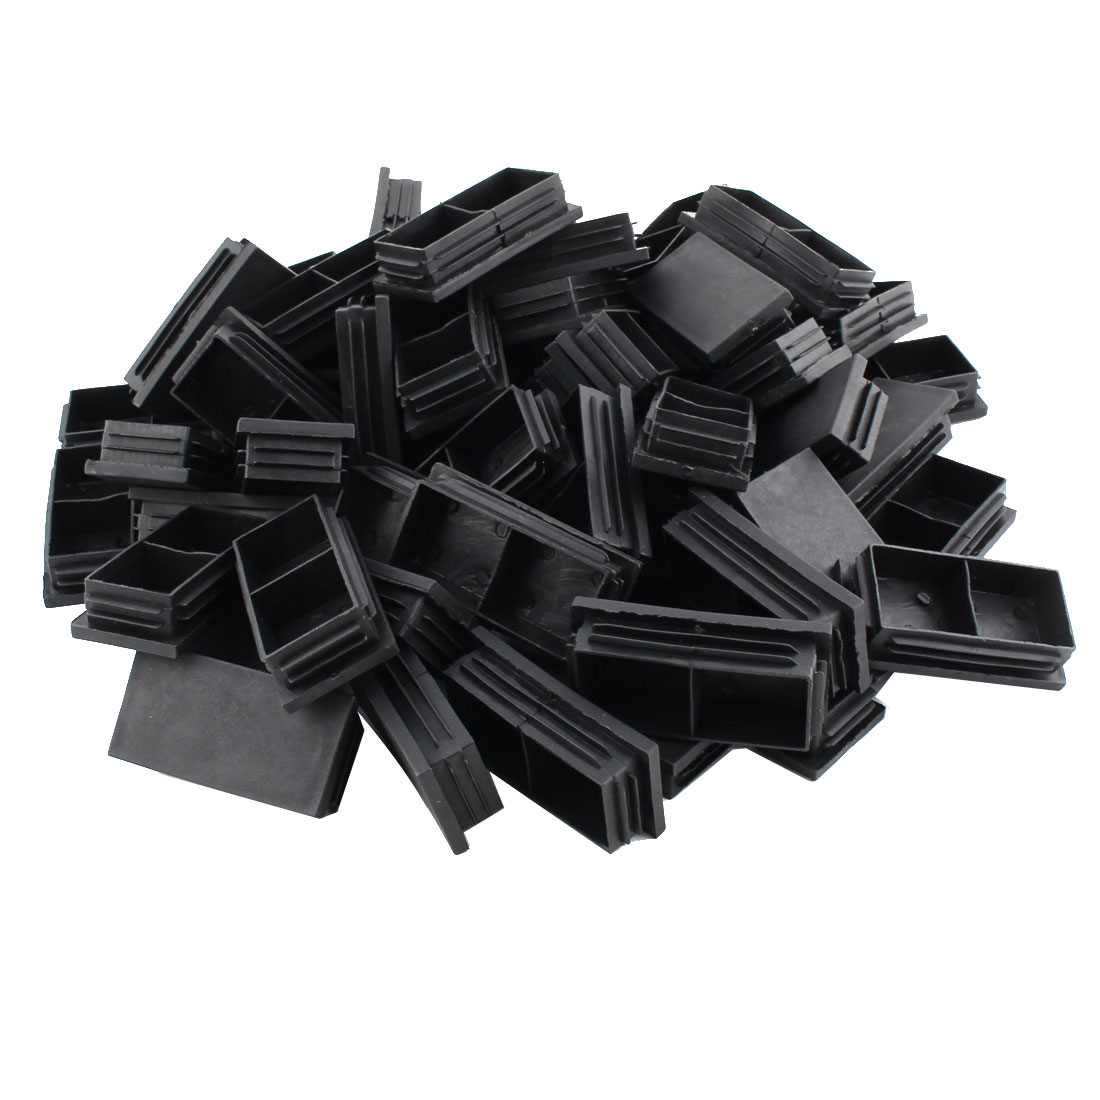 Household Office Plastic Rectangle Shaped Table Chair Legs Tube Insert Black 60 Pcs